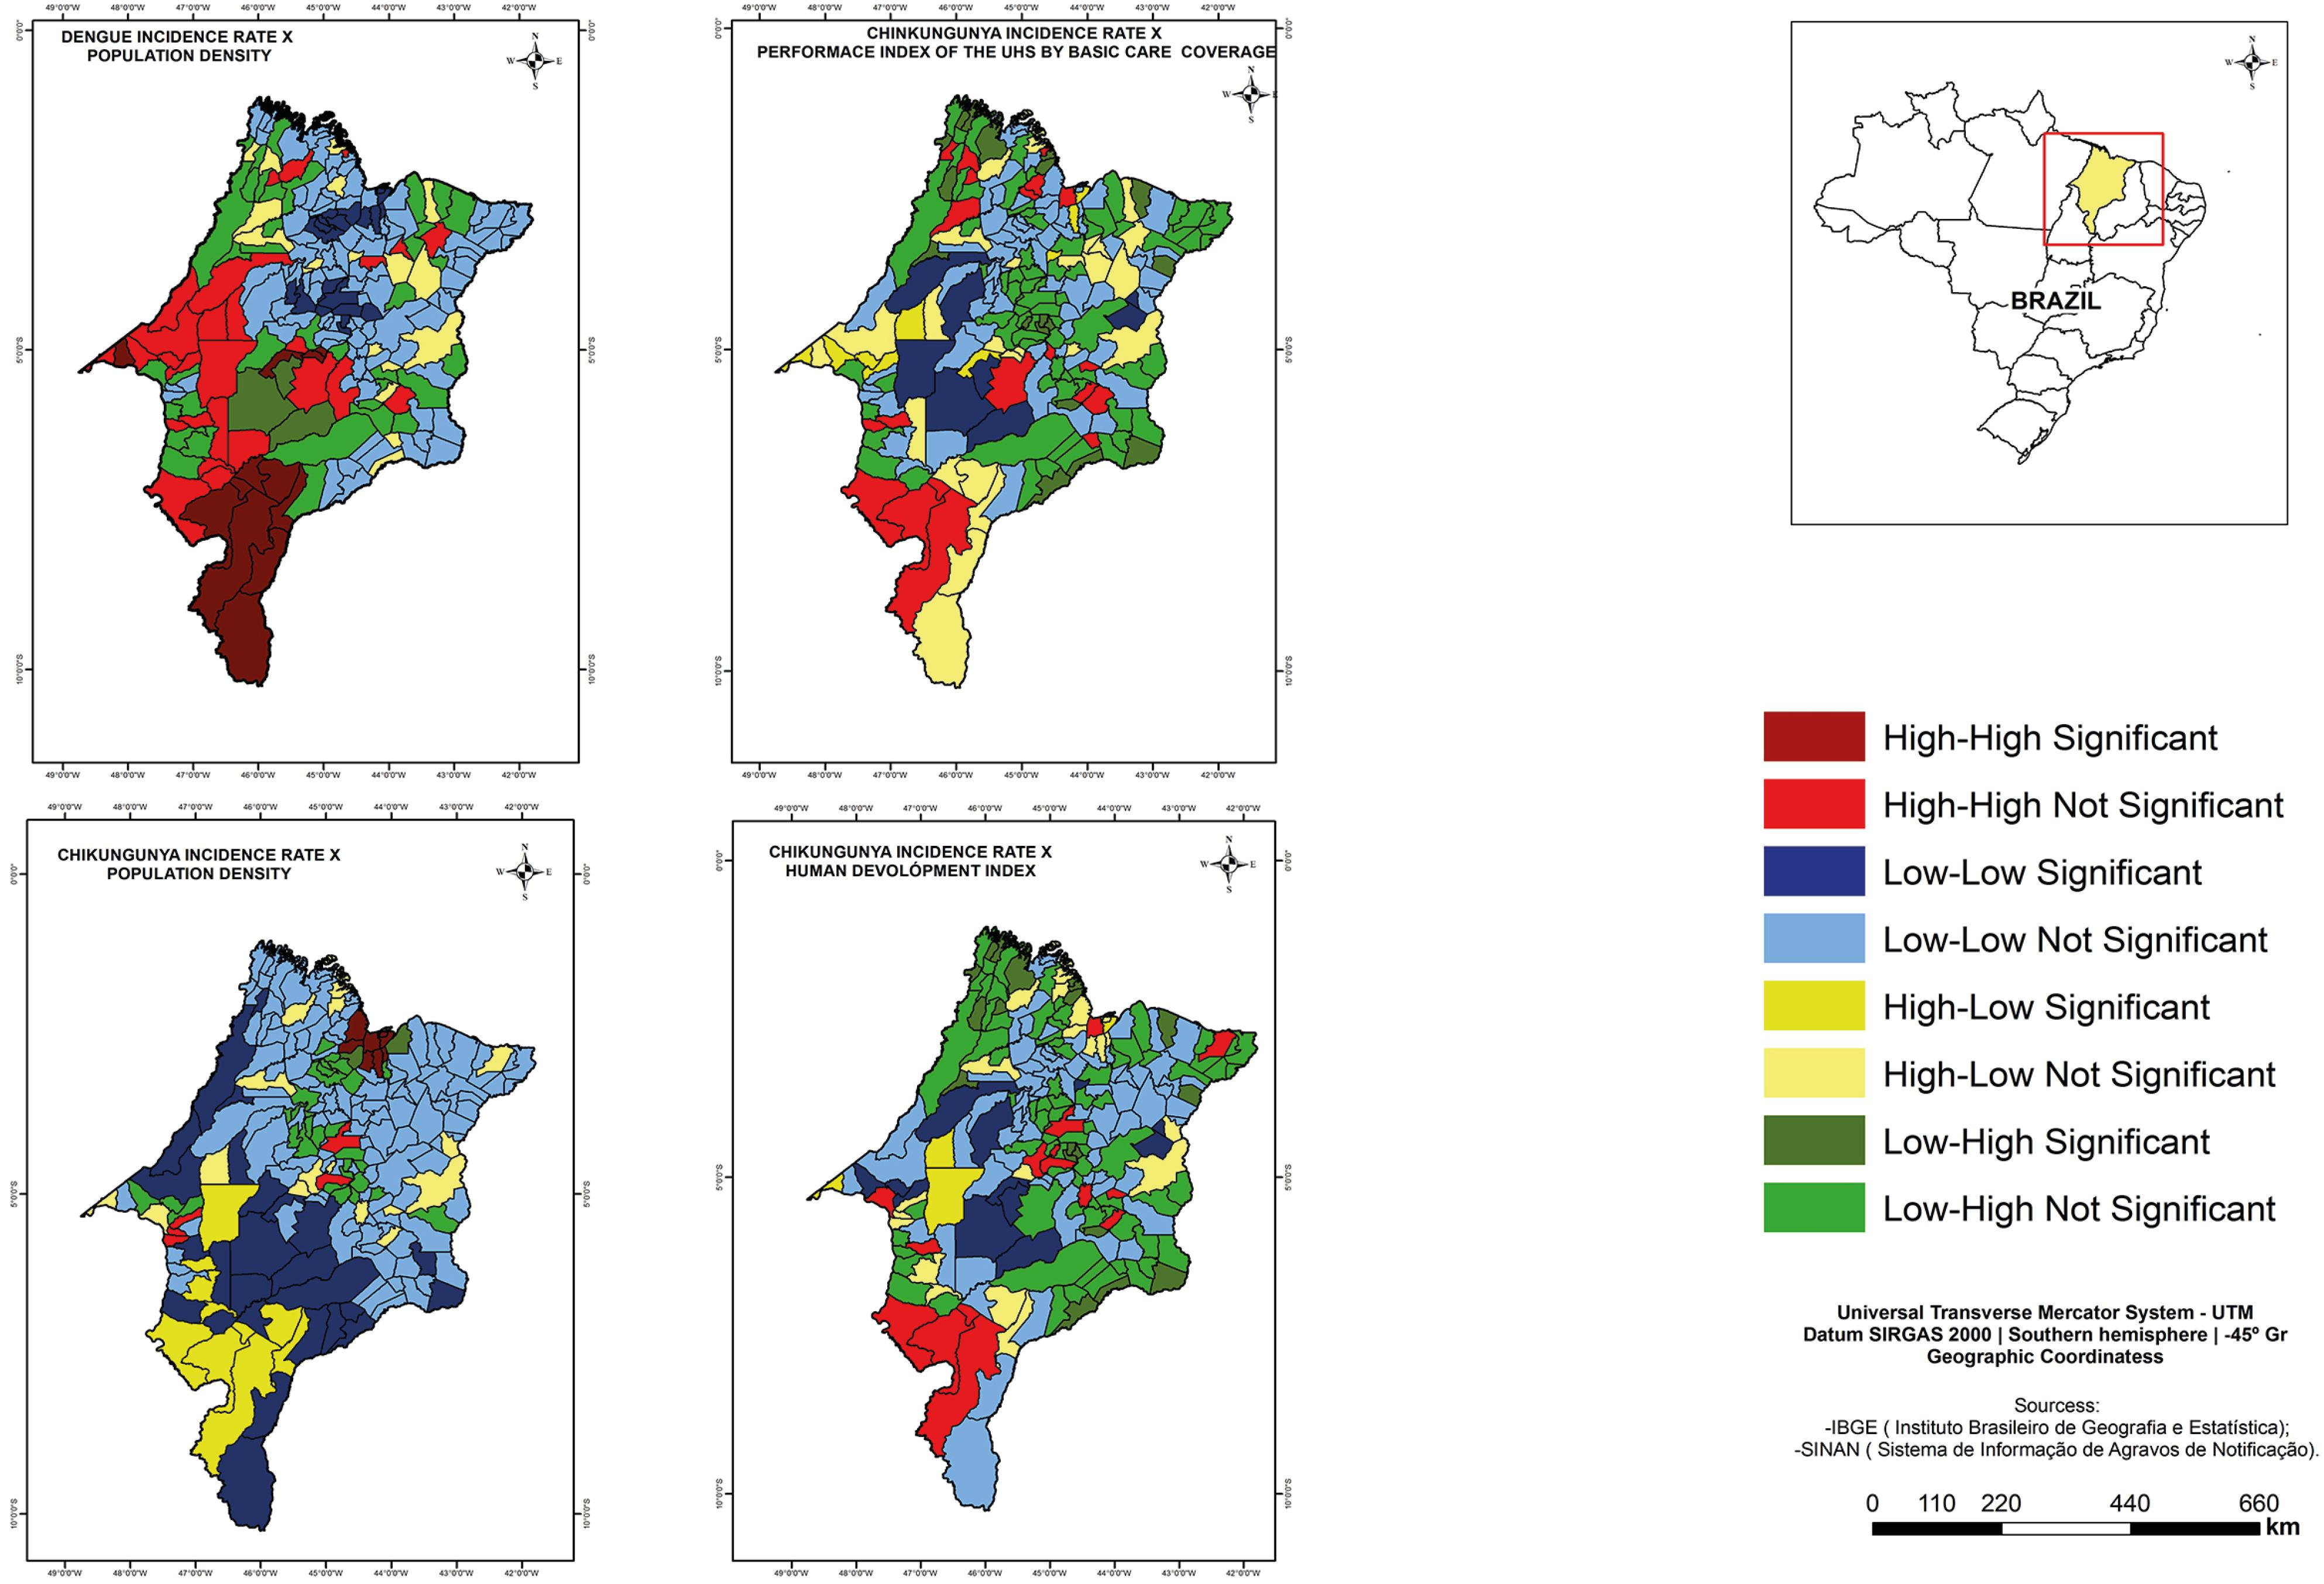 Lisa Cluster Map of the spatial correlations between the dengue fever incidence rate and the population density, as well as Performance Index of Unified Health System by basic care coverage between the chikungunya fever incidence rate, the population density and Municipal Human Development Index. Maranhao, 2015-2016.